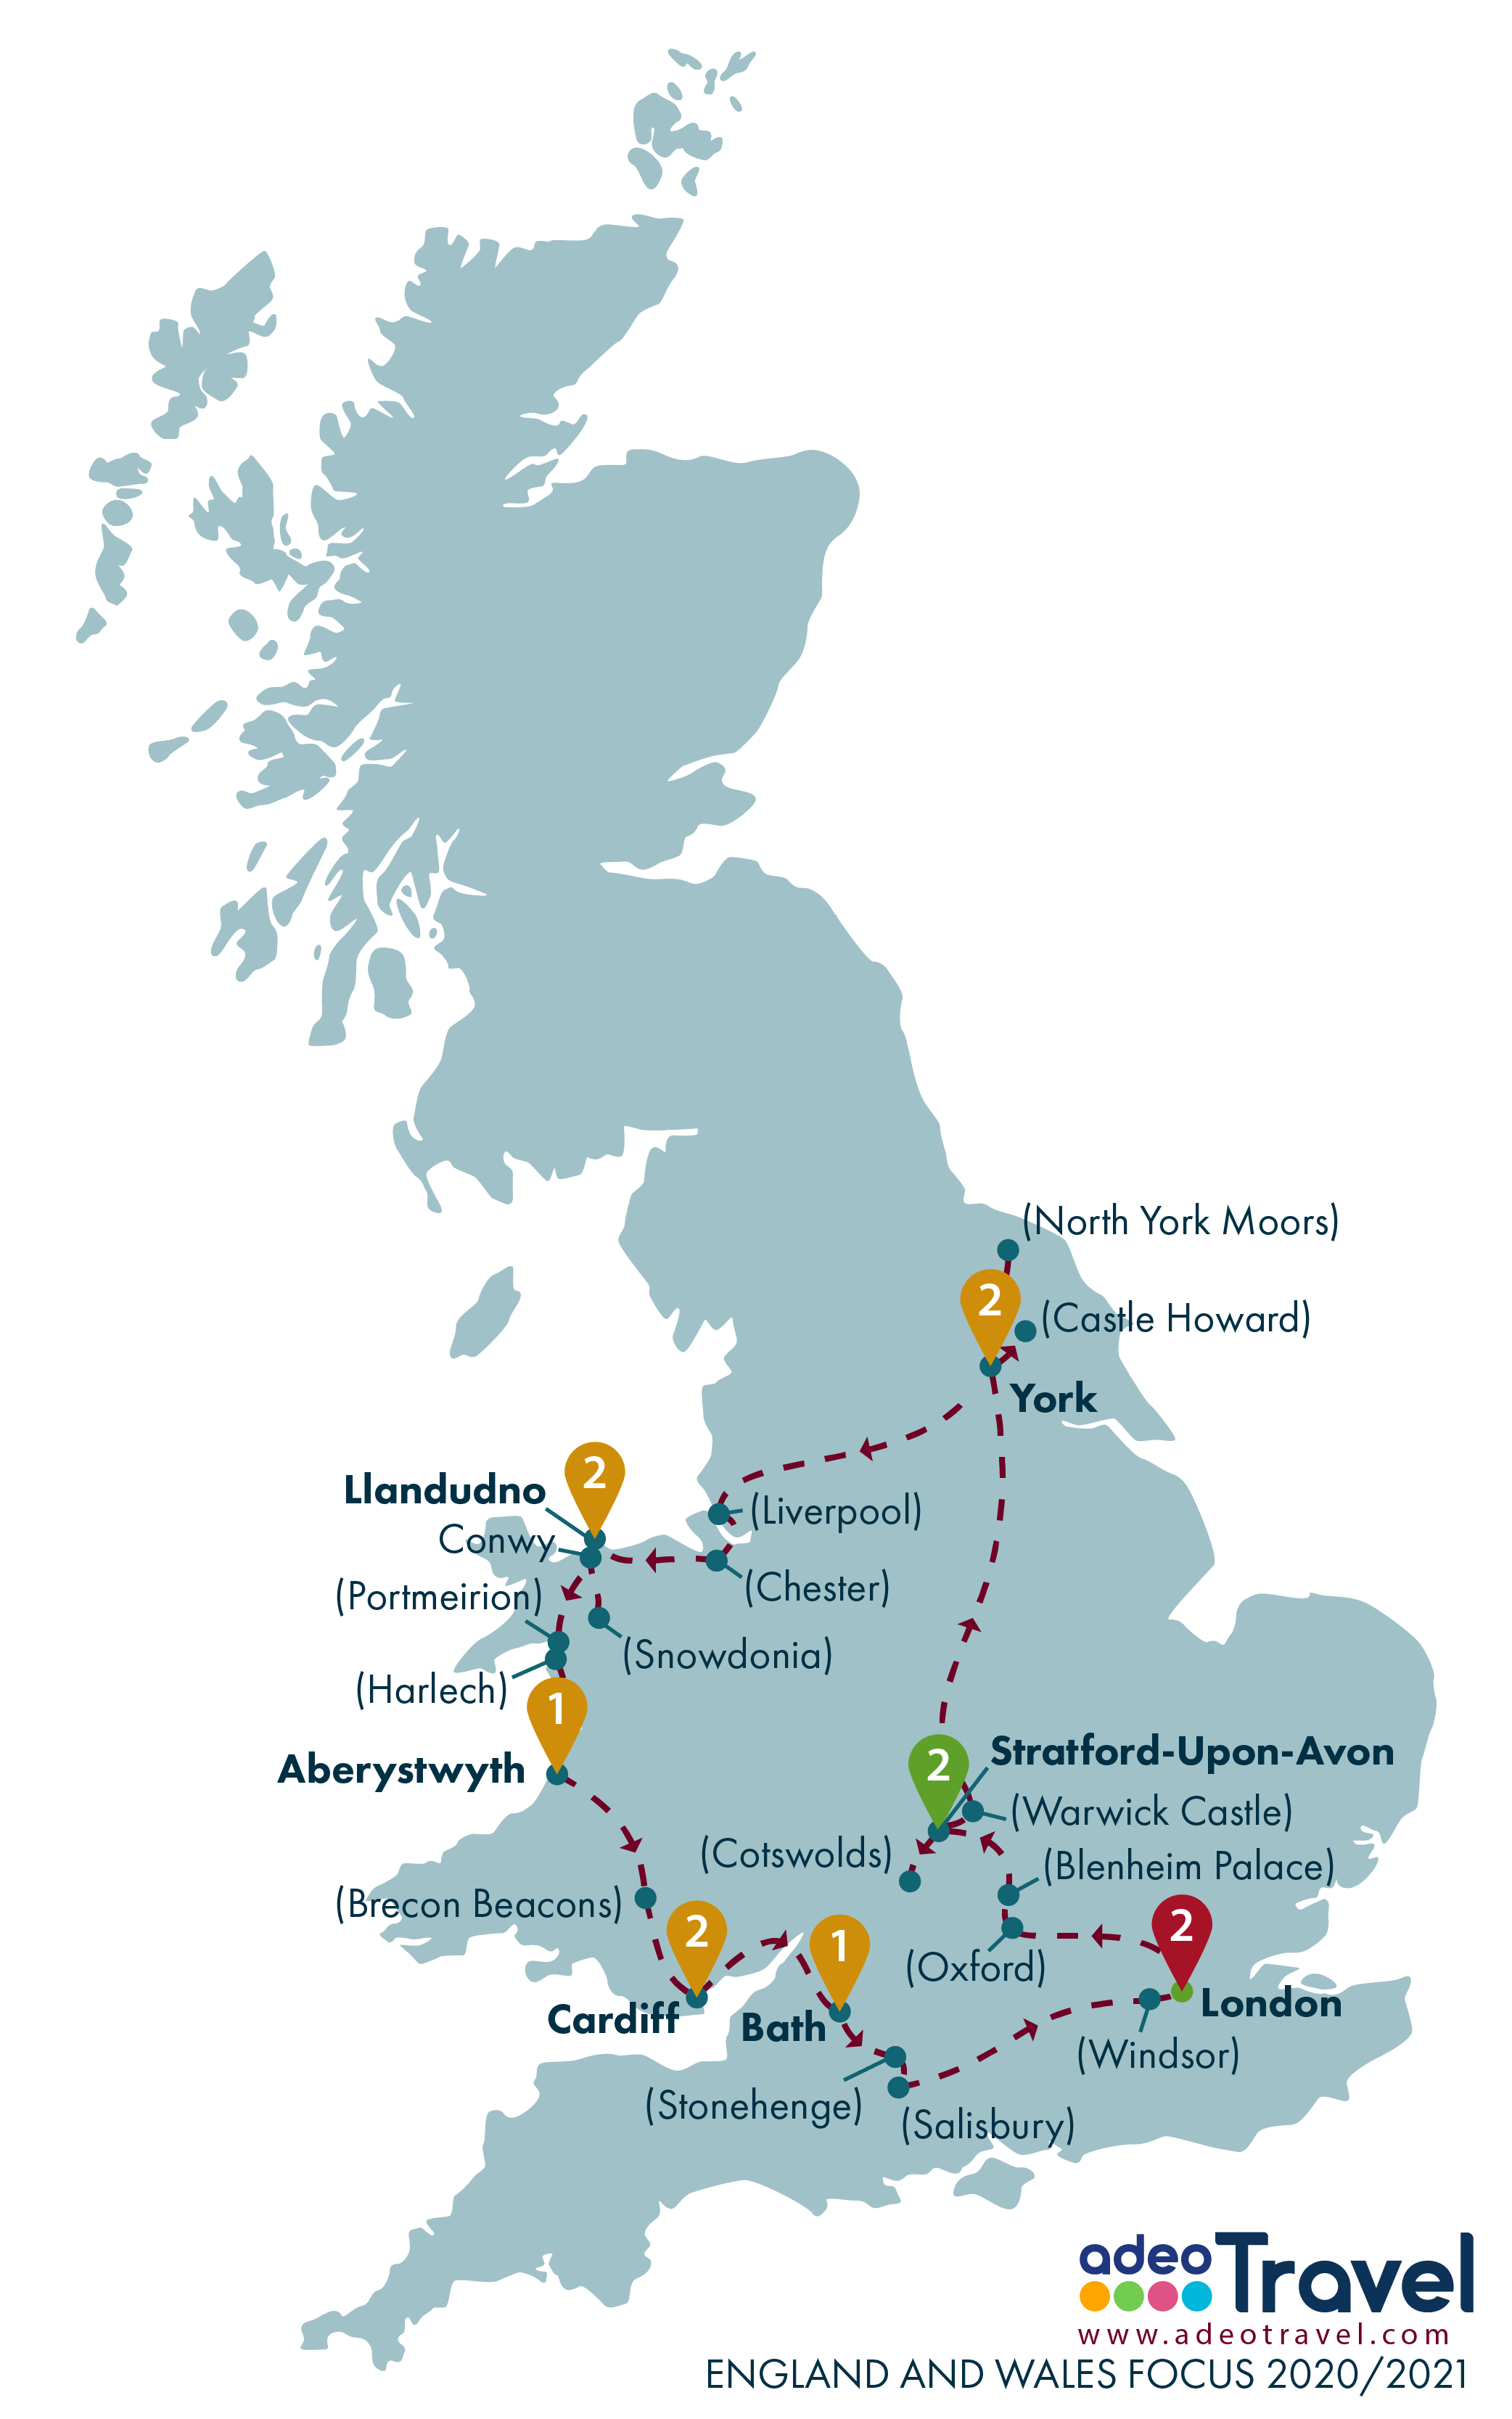 Map - England and Wales Focus 2020 2021